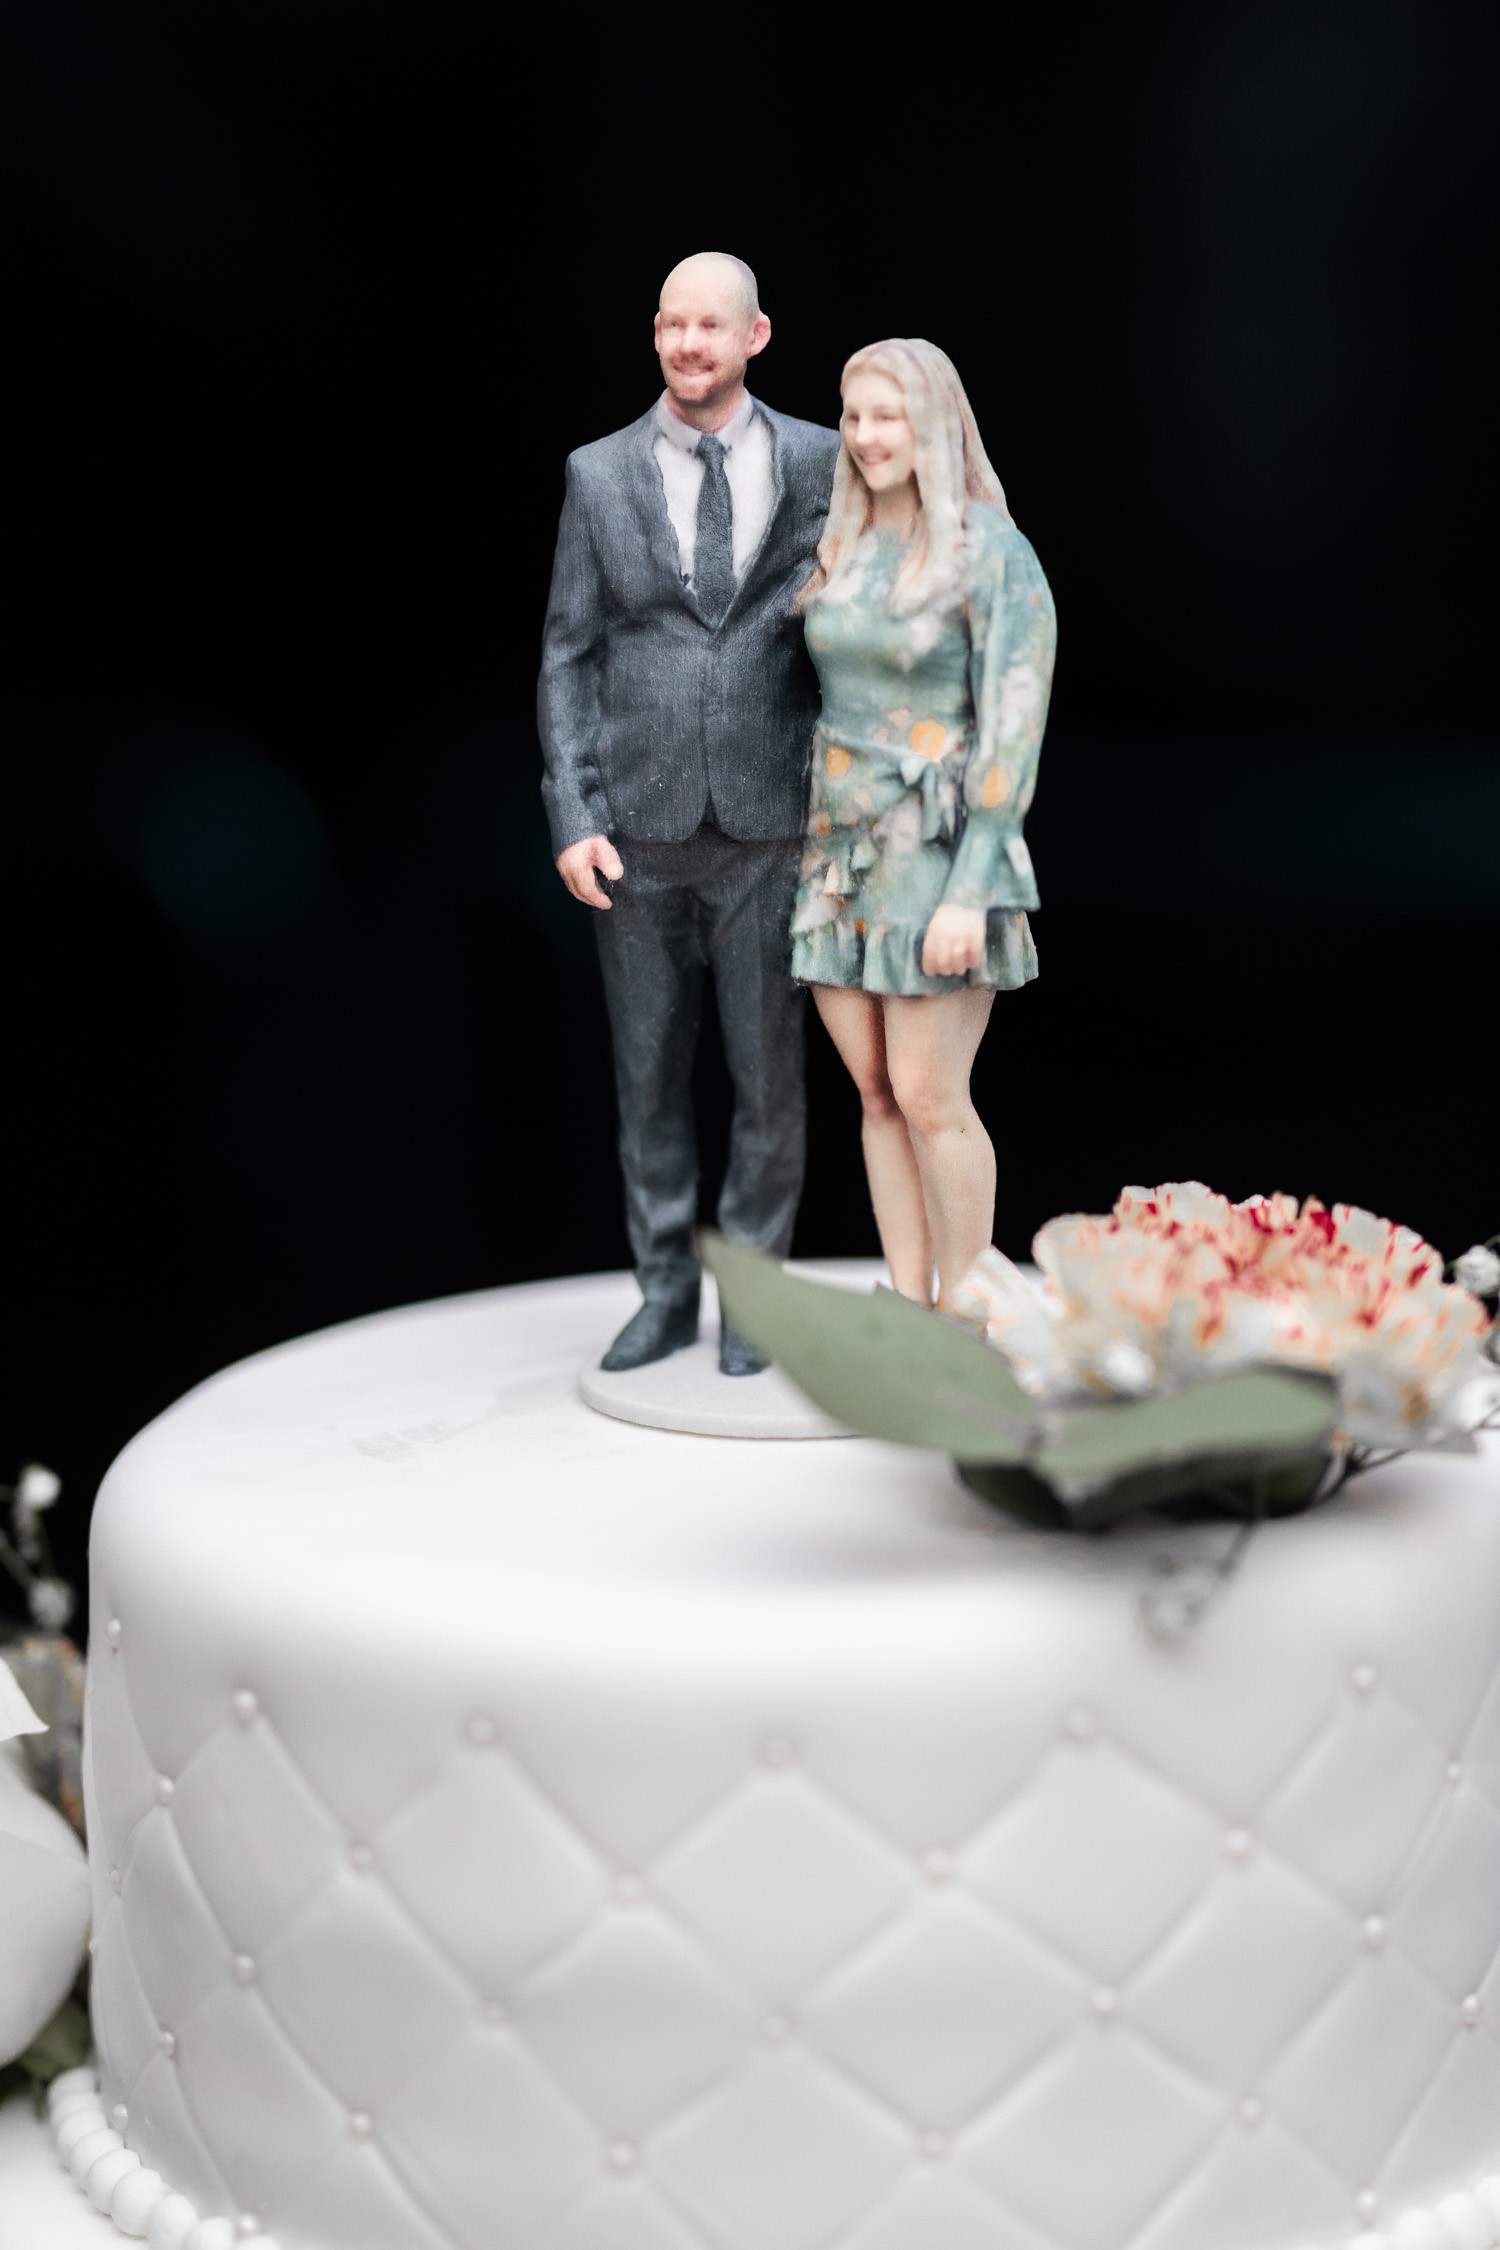 wedding-videography-and-photography (11)